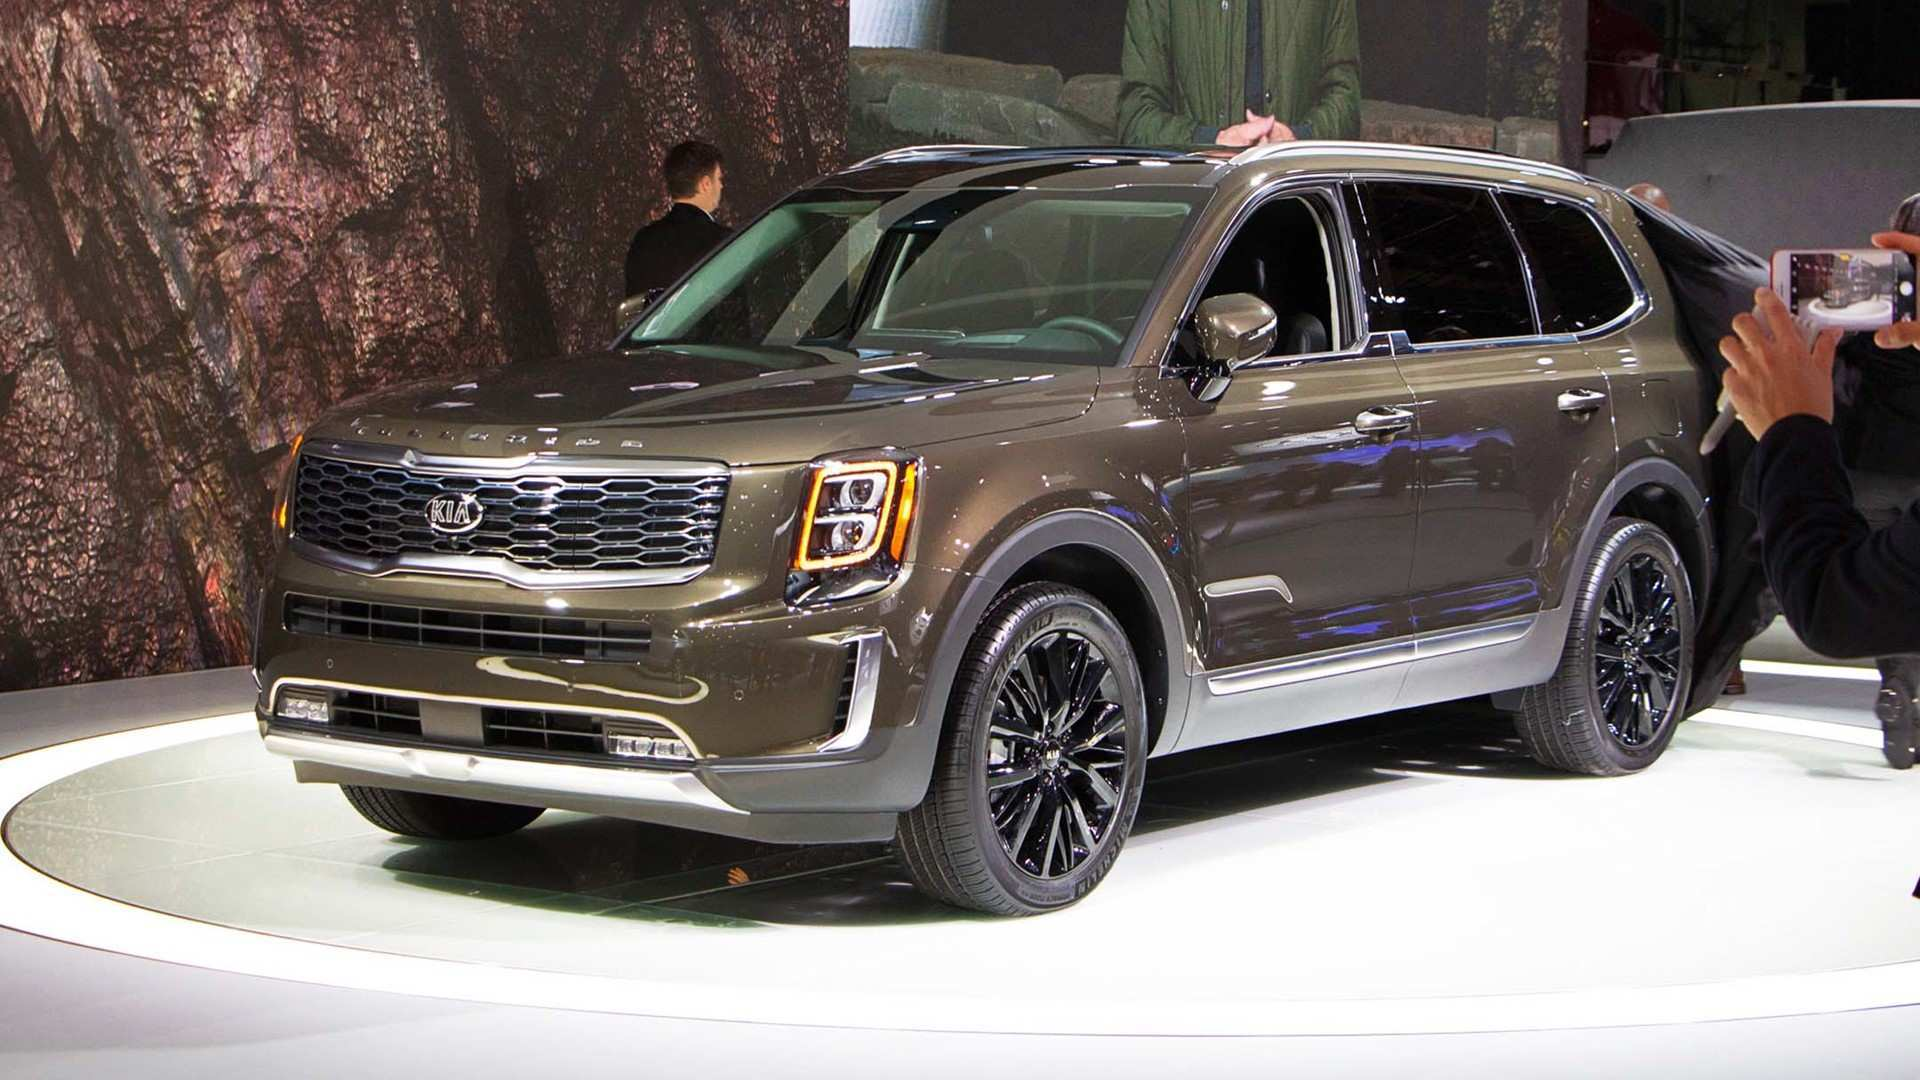 66 Best Review 2020 Kia Telluride Build And Price Reviews for 2020 Kia Telluride Build And Price